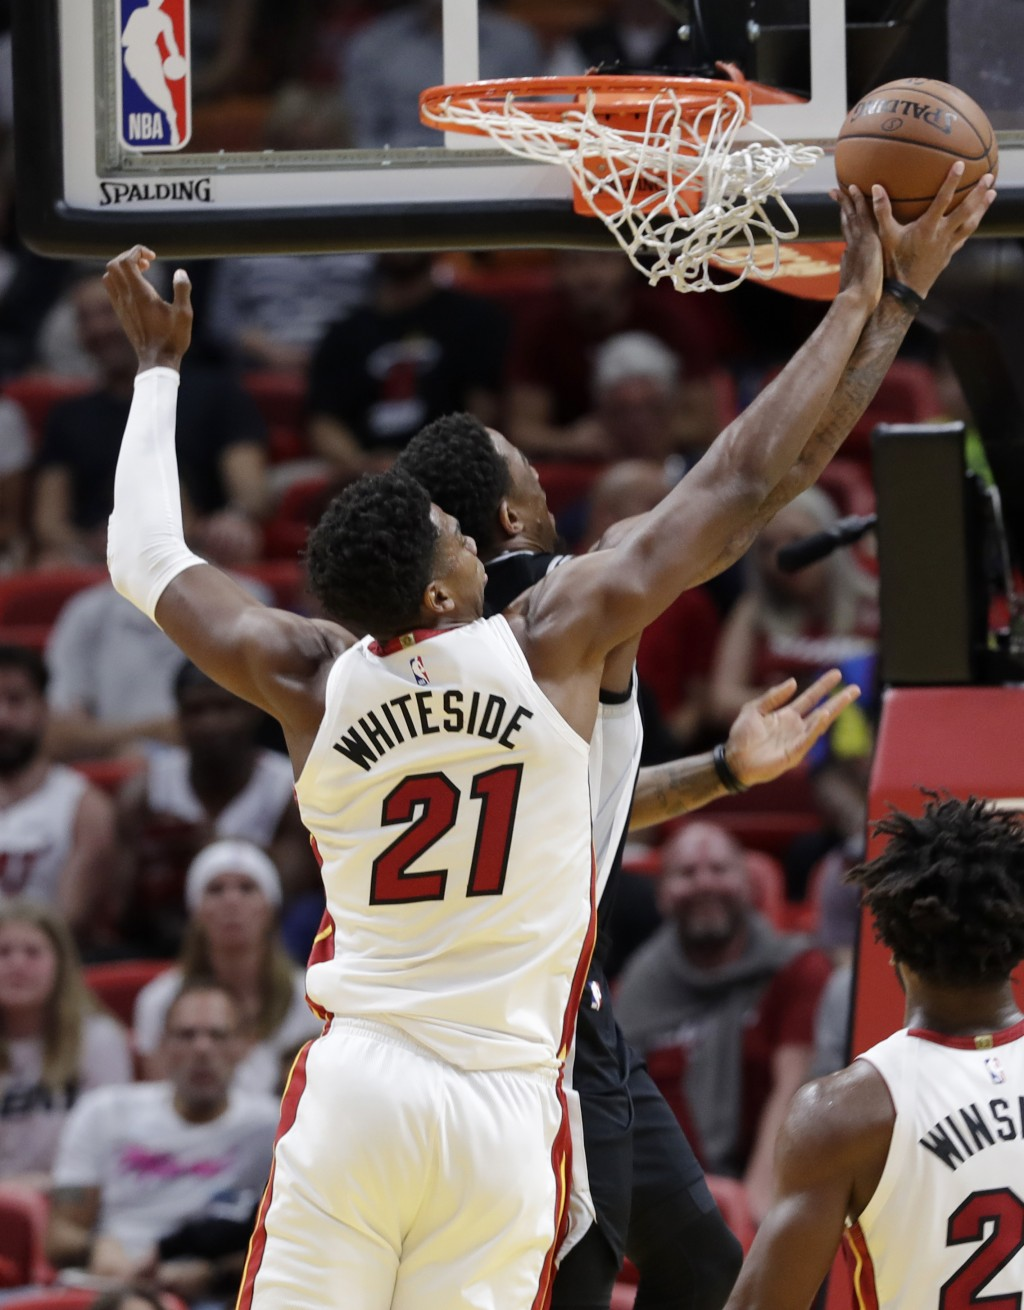 Miami Heat center Hassan Whiteside (21) blocks a shot by San Antonio Spurs guard DeMar DeRozan during the first half of an NBA basketball game, Wednes...